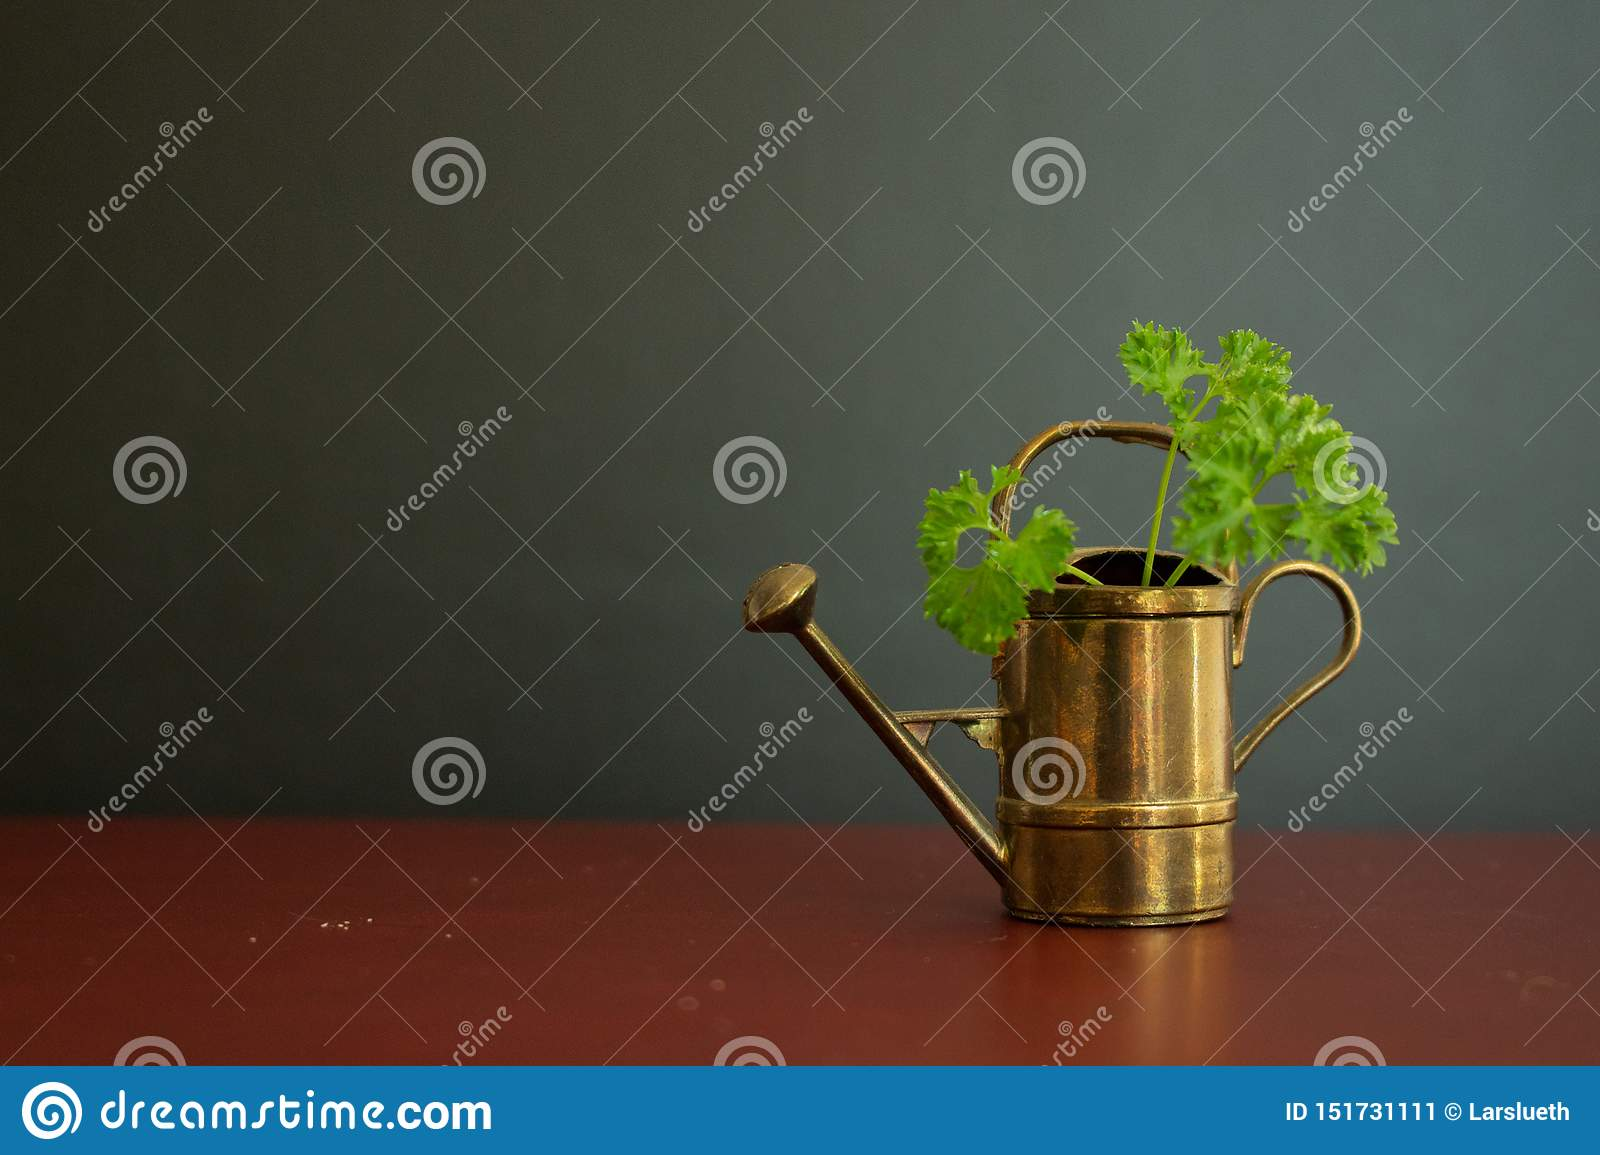 Old and beautiful watering can garden tool with green organic parsley in it.